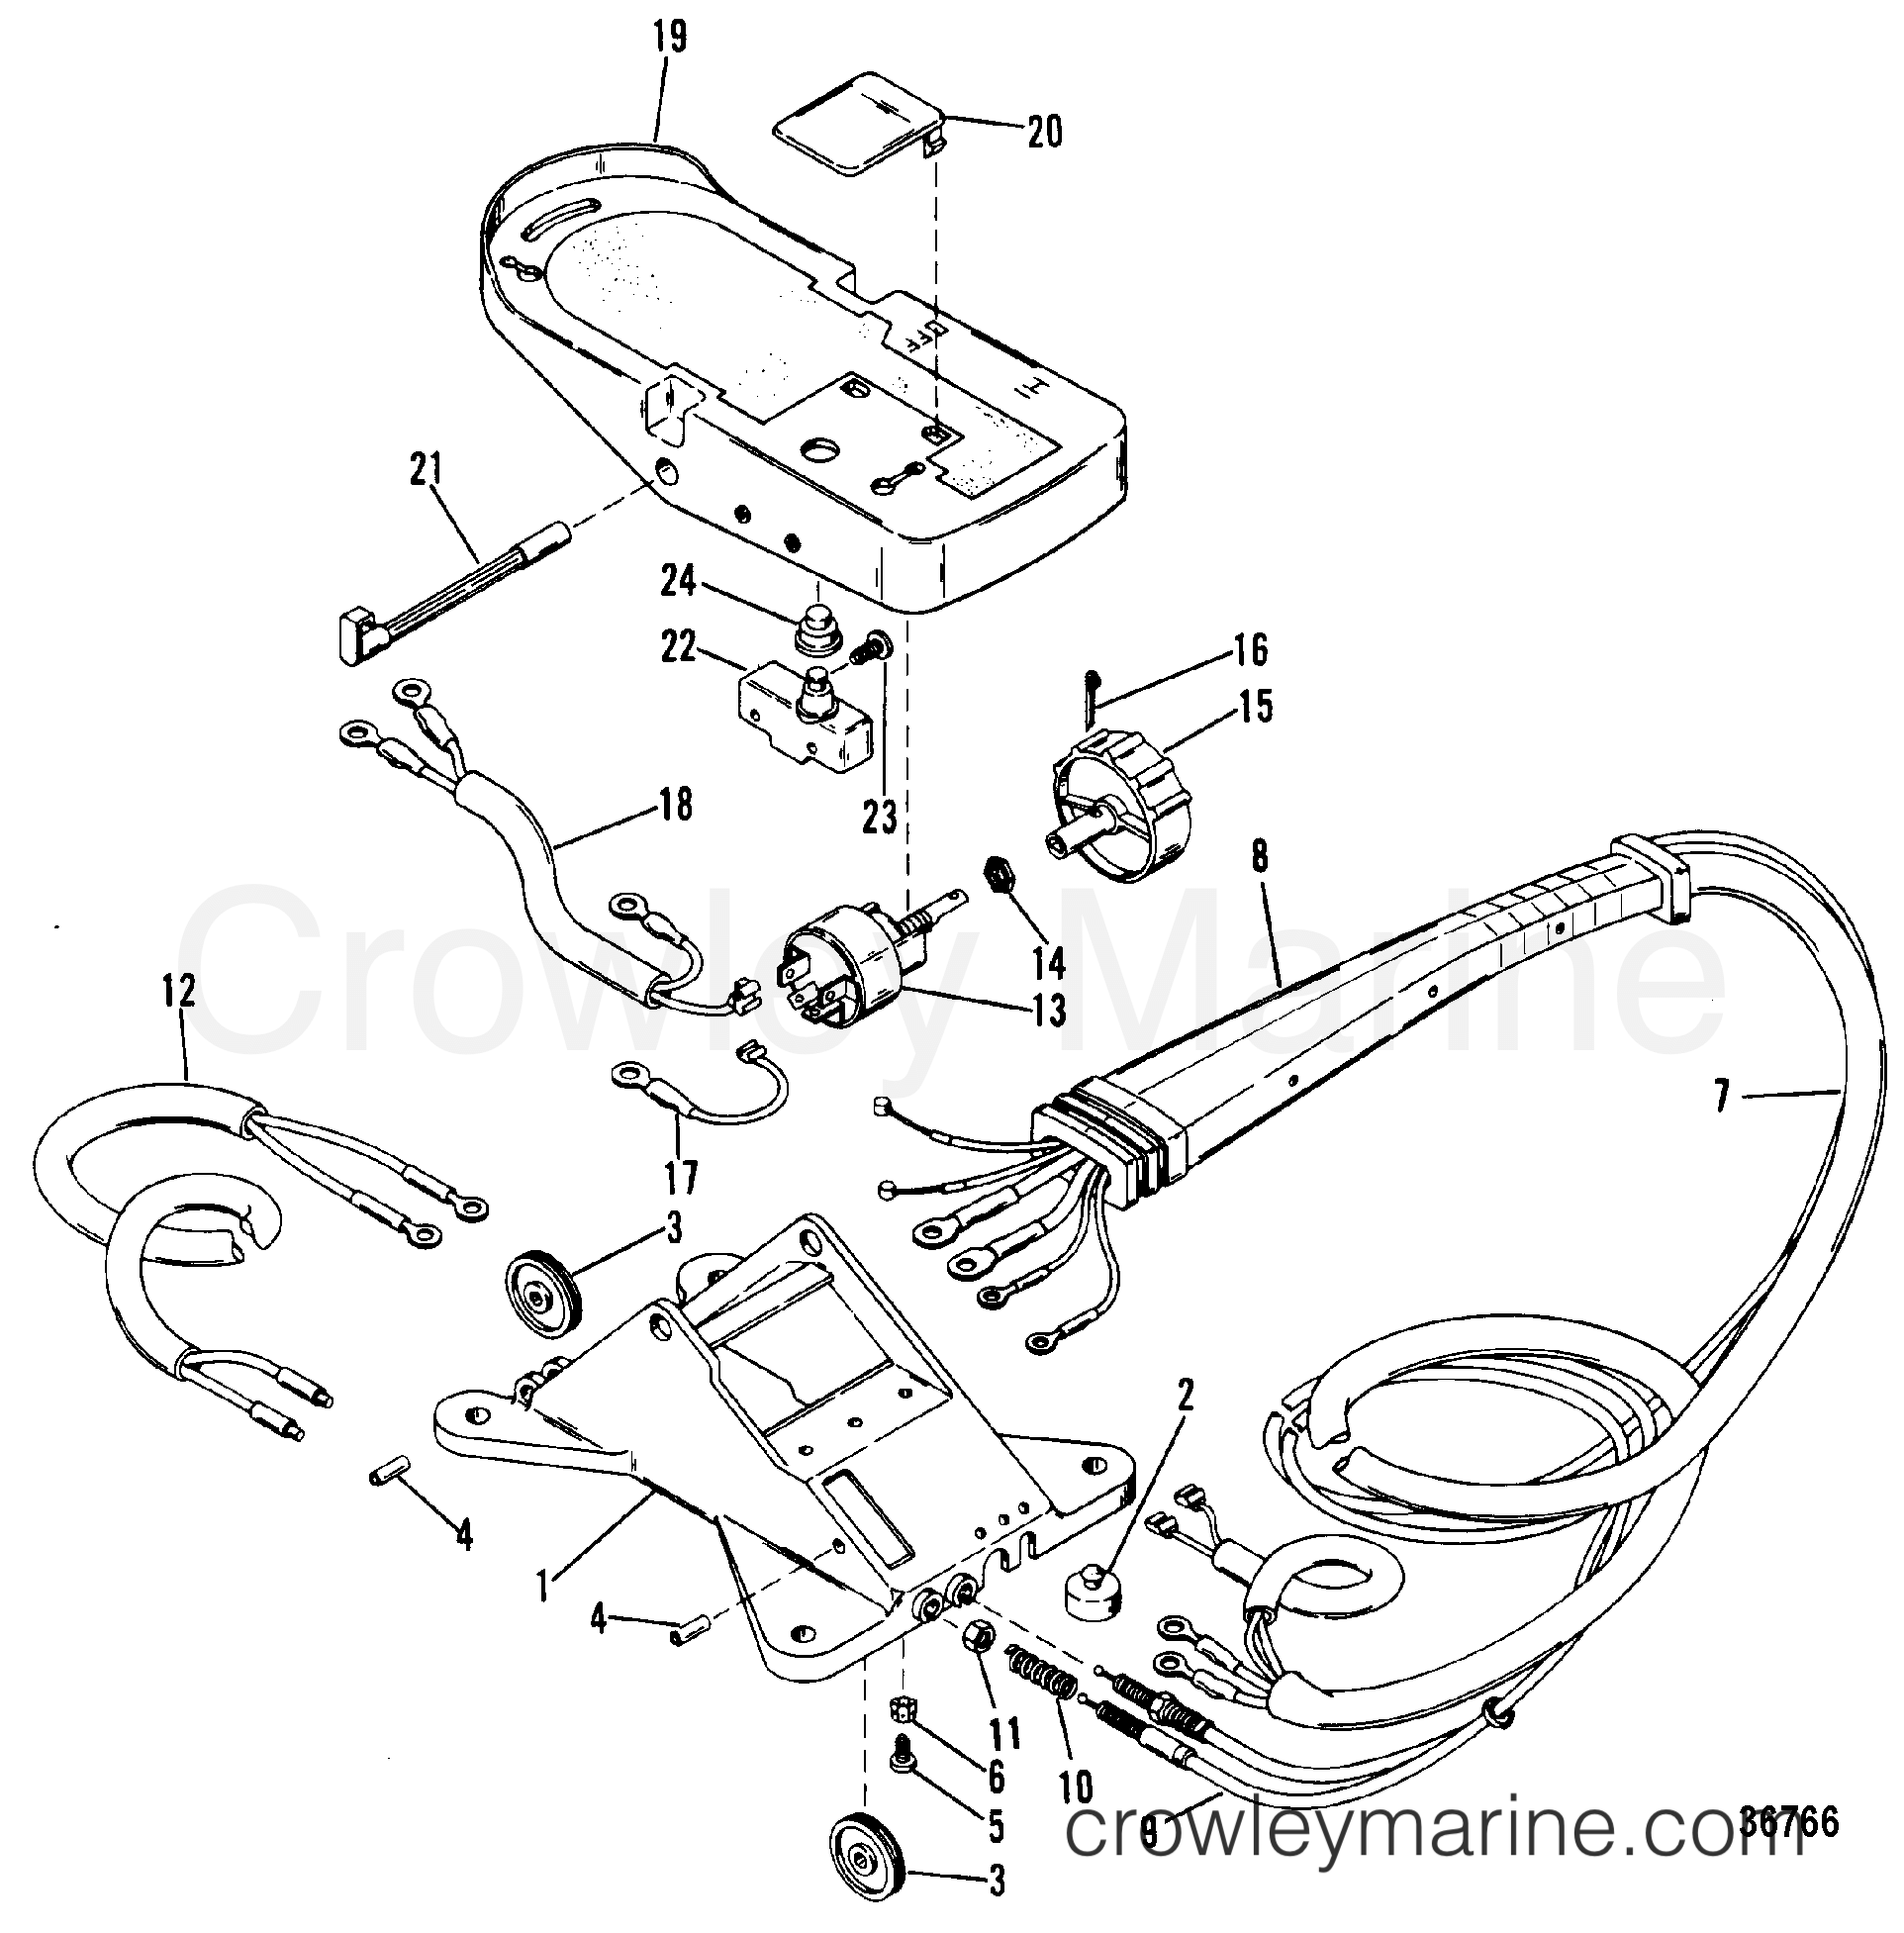 wiring harness and foot plate remote 1984 mariner outboard 222 r 7001904 crowley